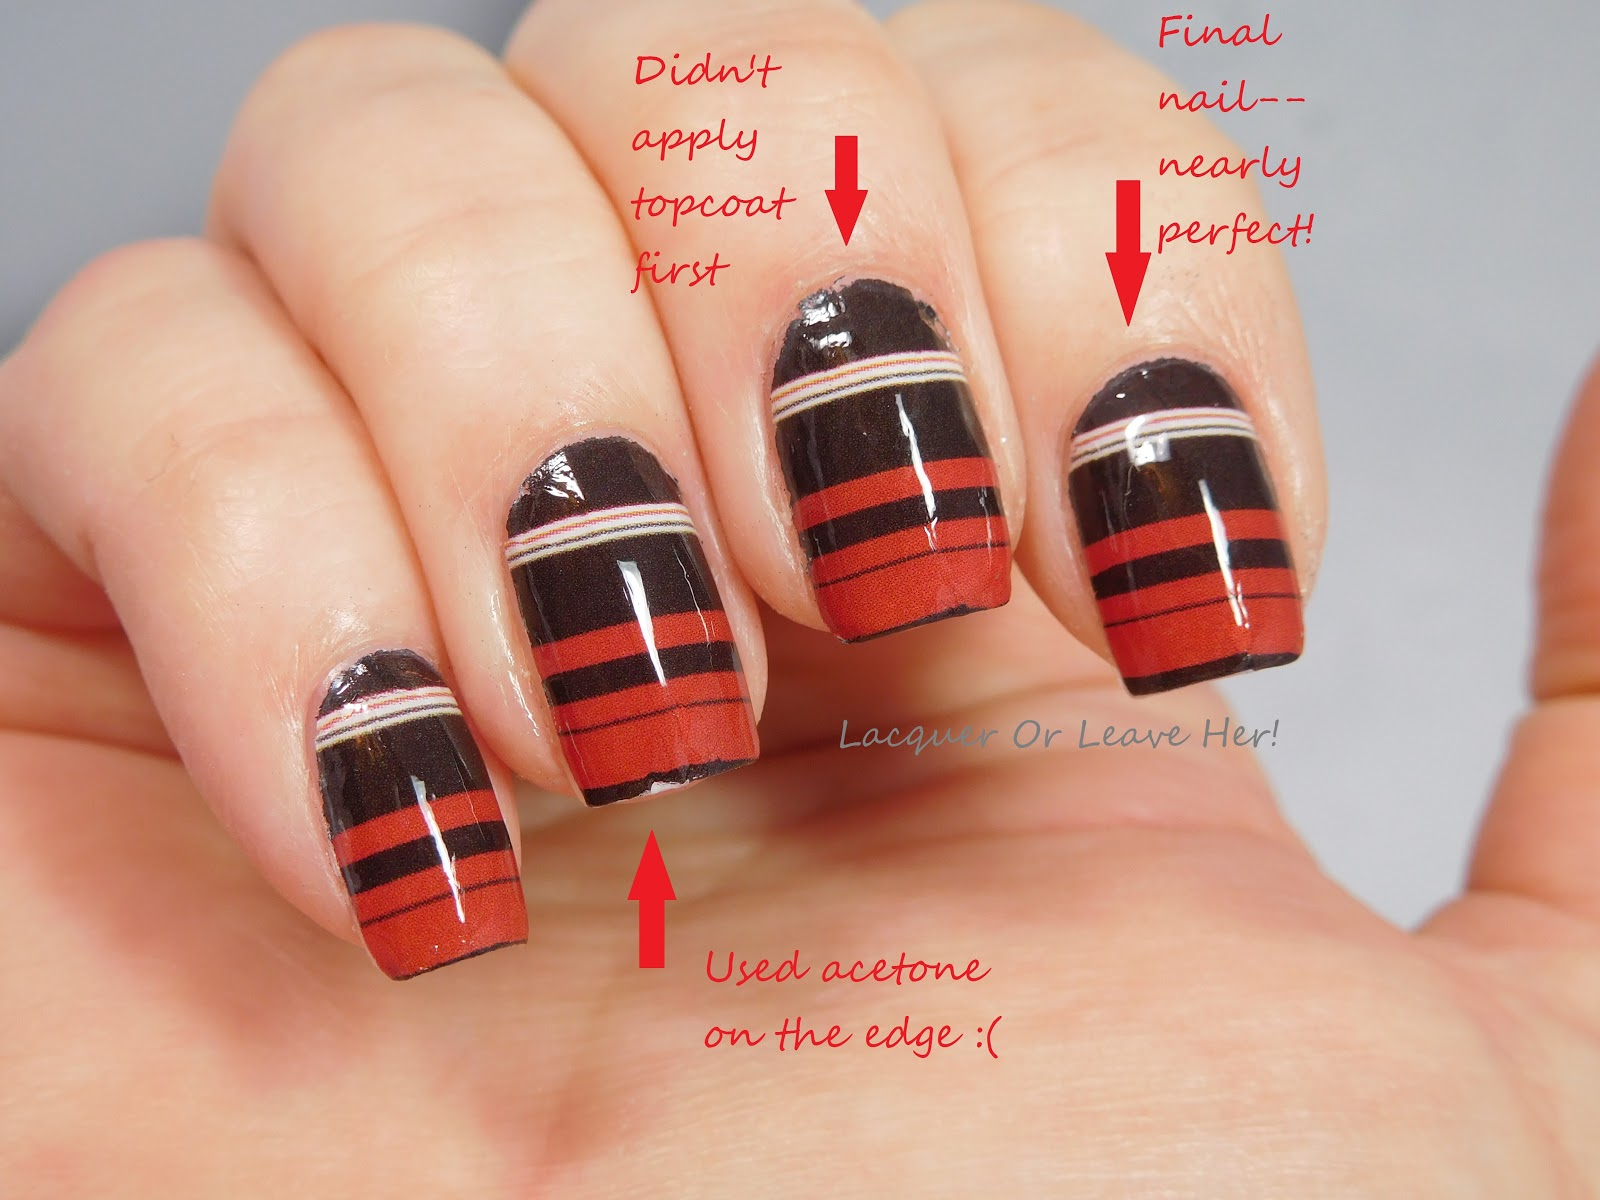 Lacquer Or Leave Her Review Tutorial Water Decal Nail Wraps From Charlie S Nail Art